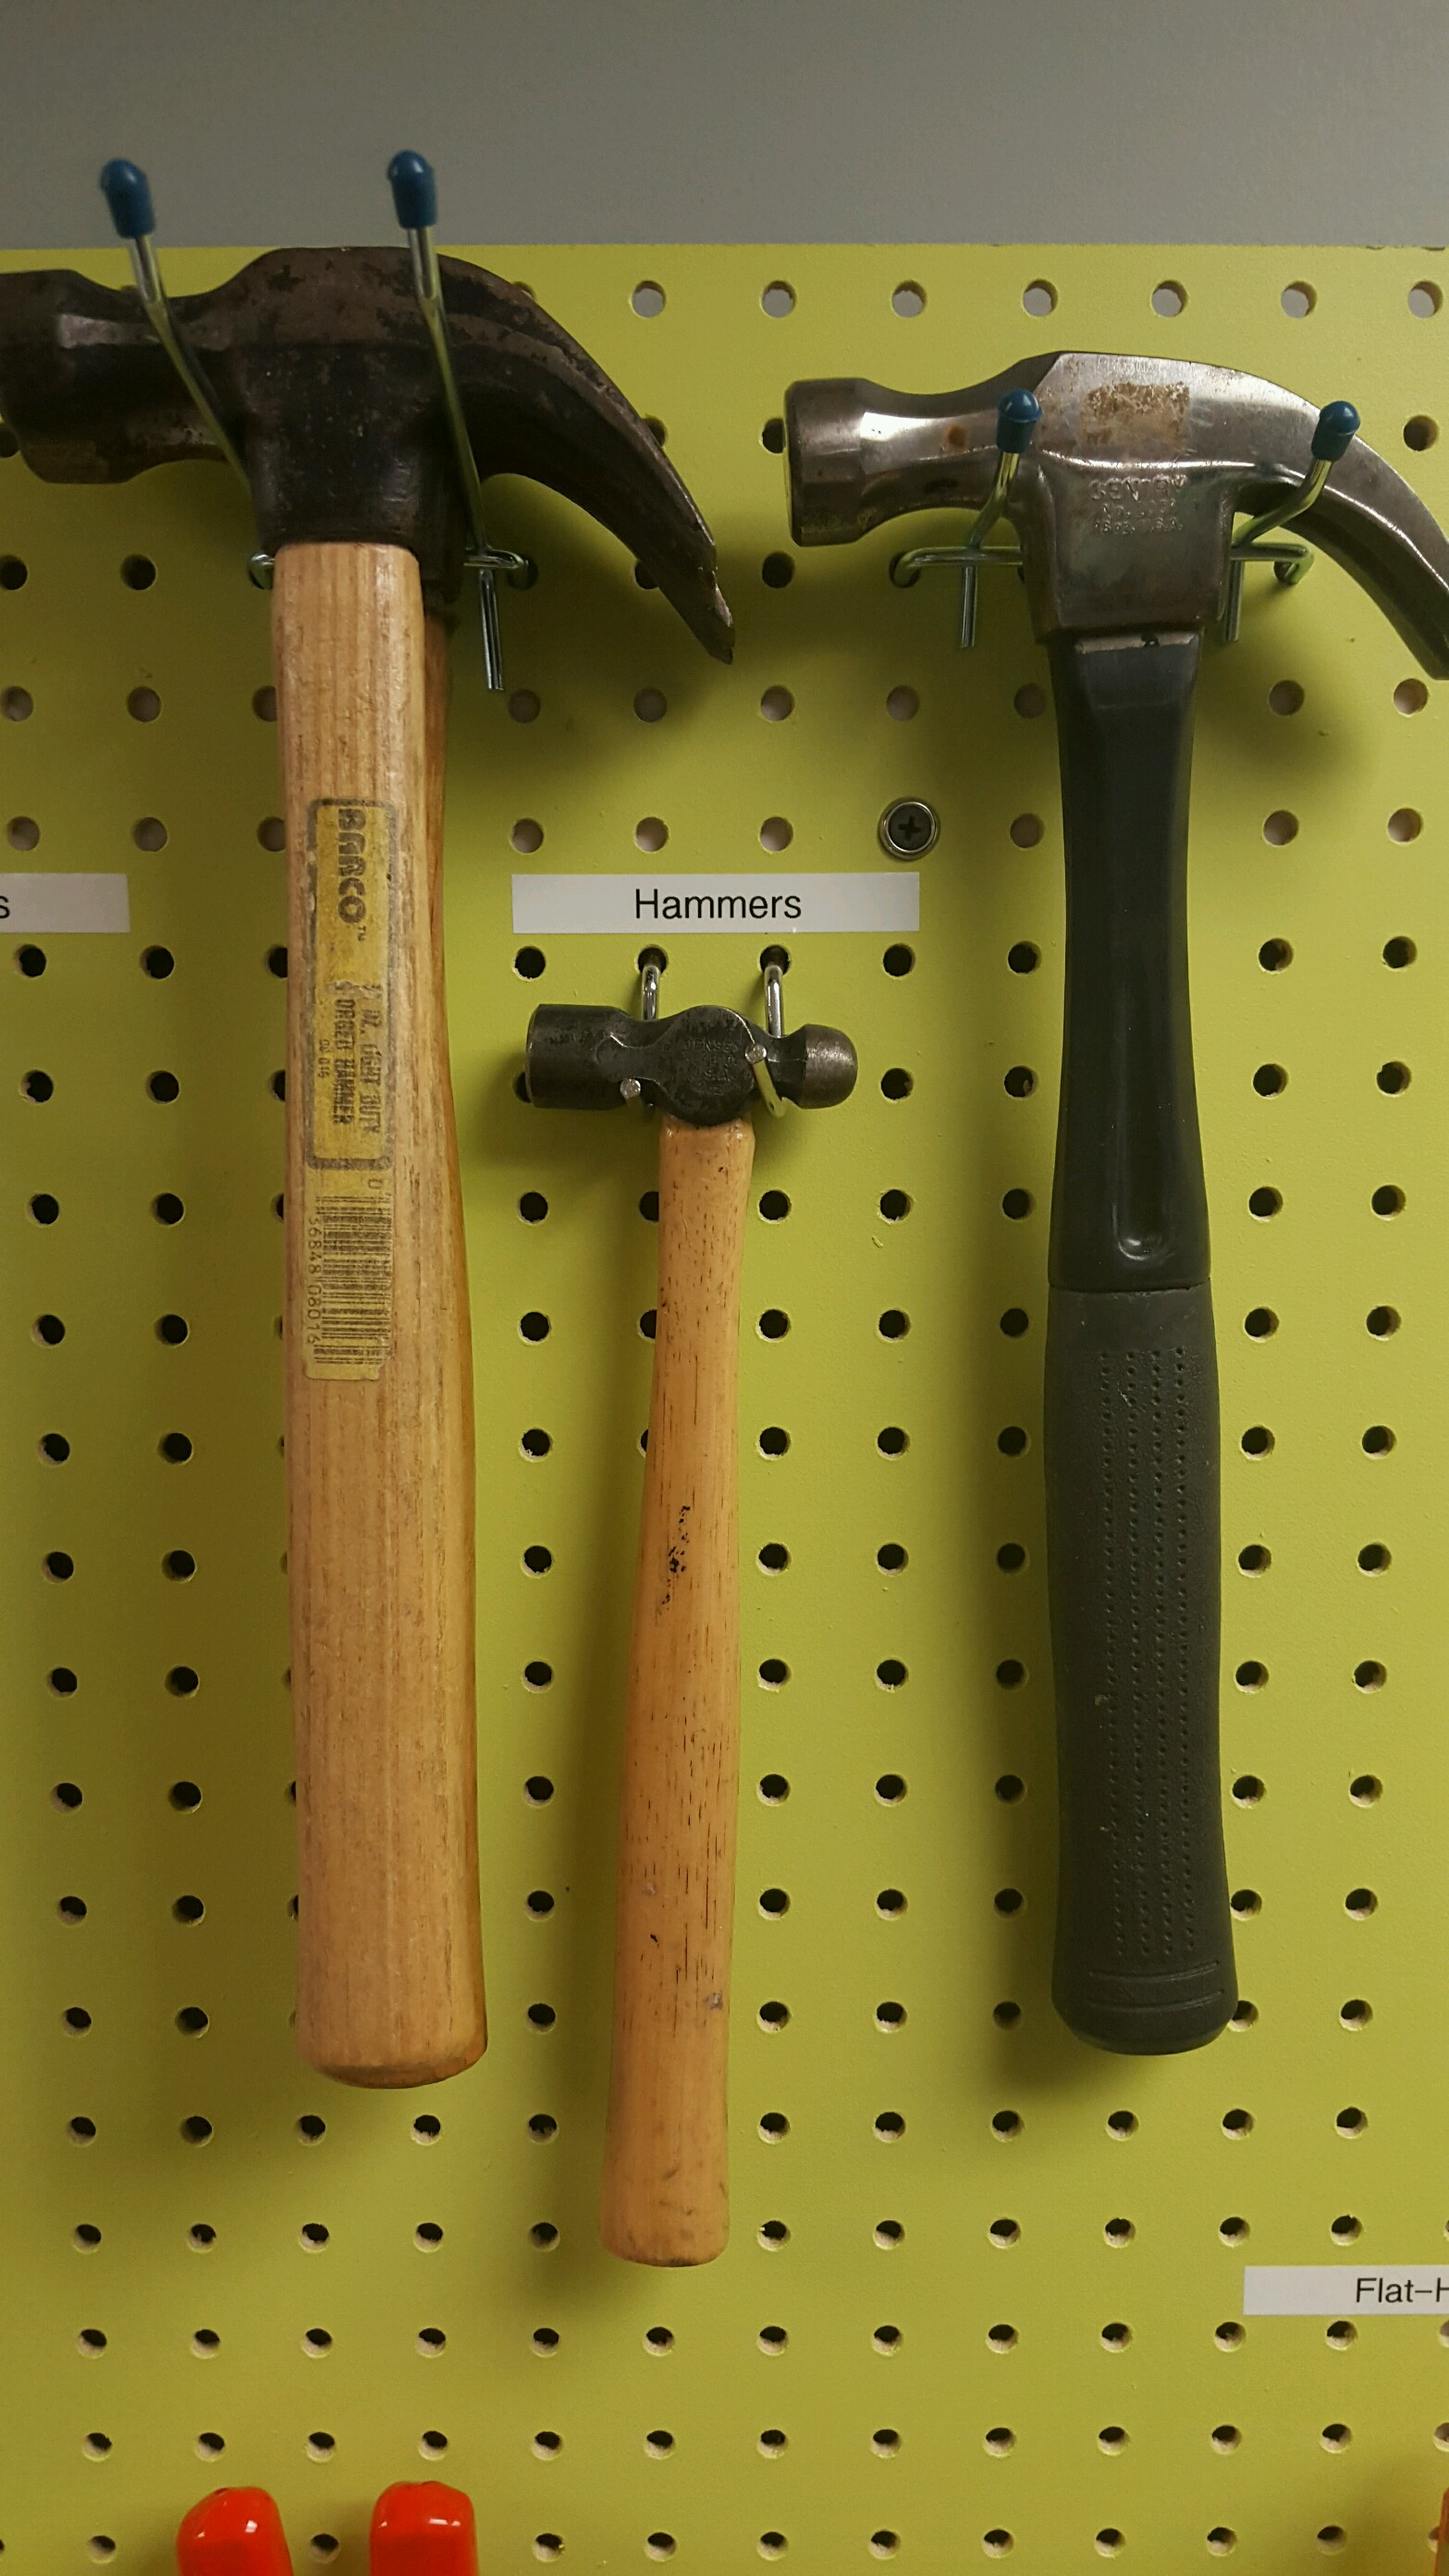 Hammers, varying in sizes.